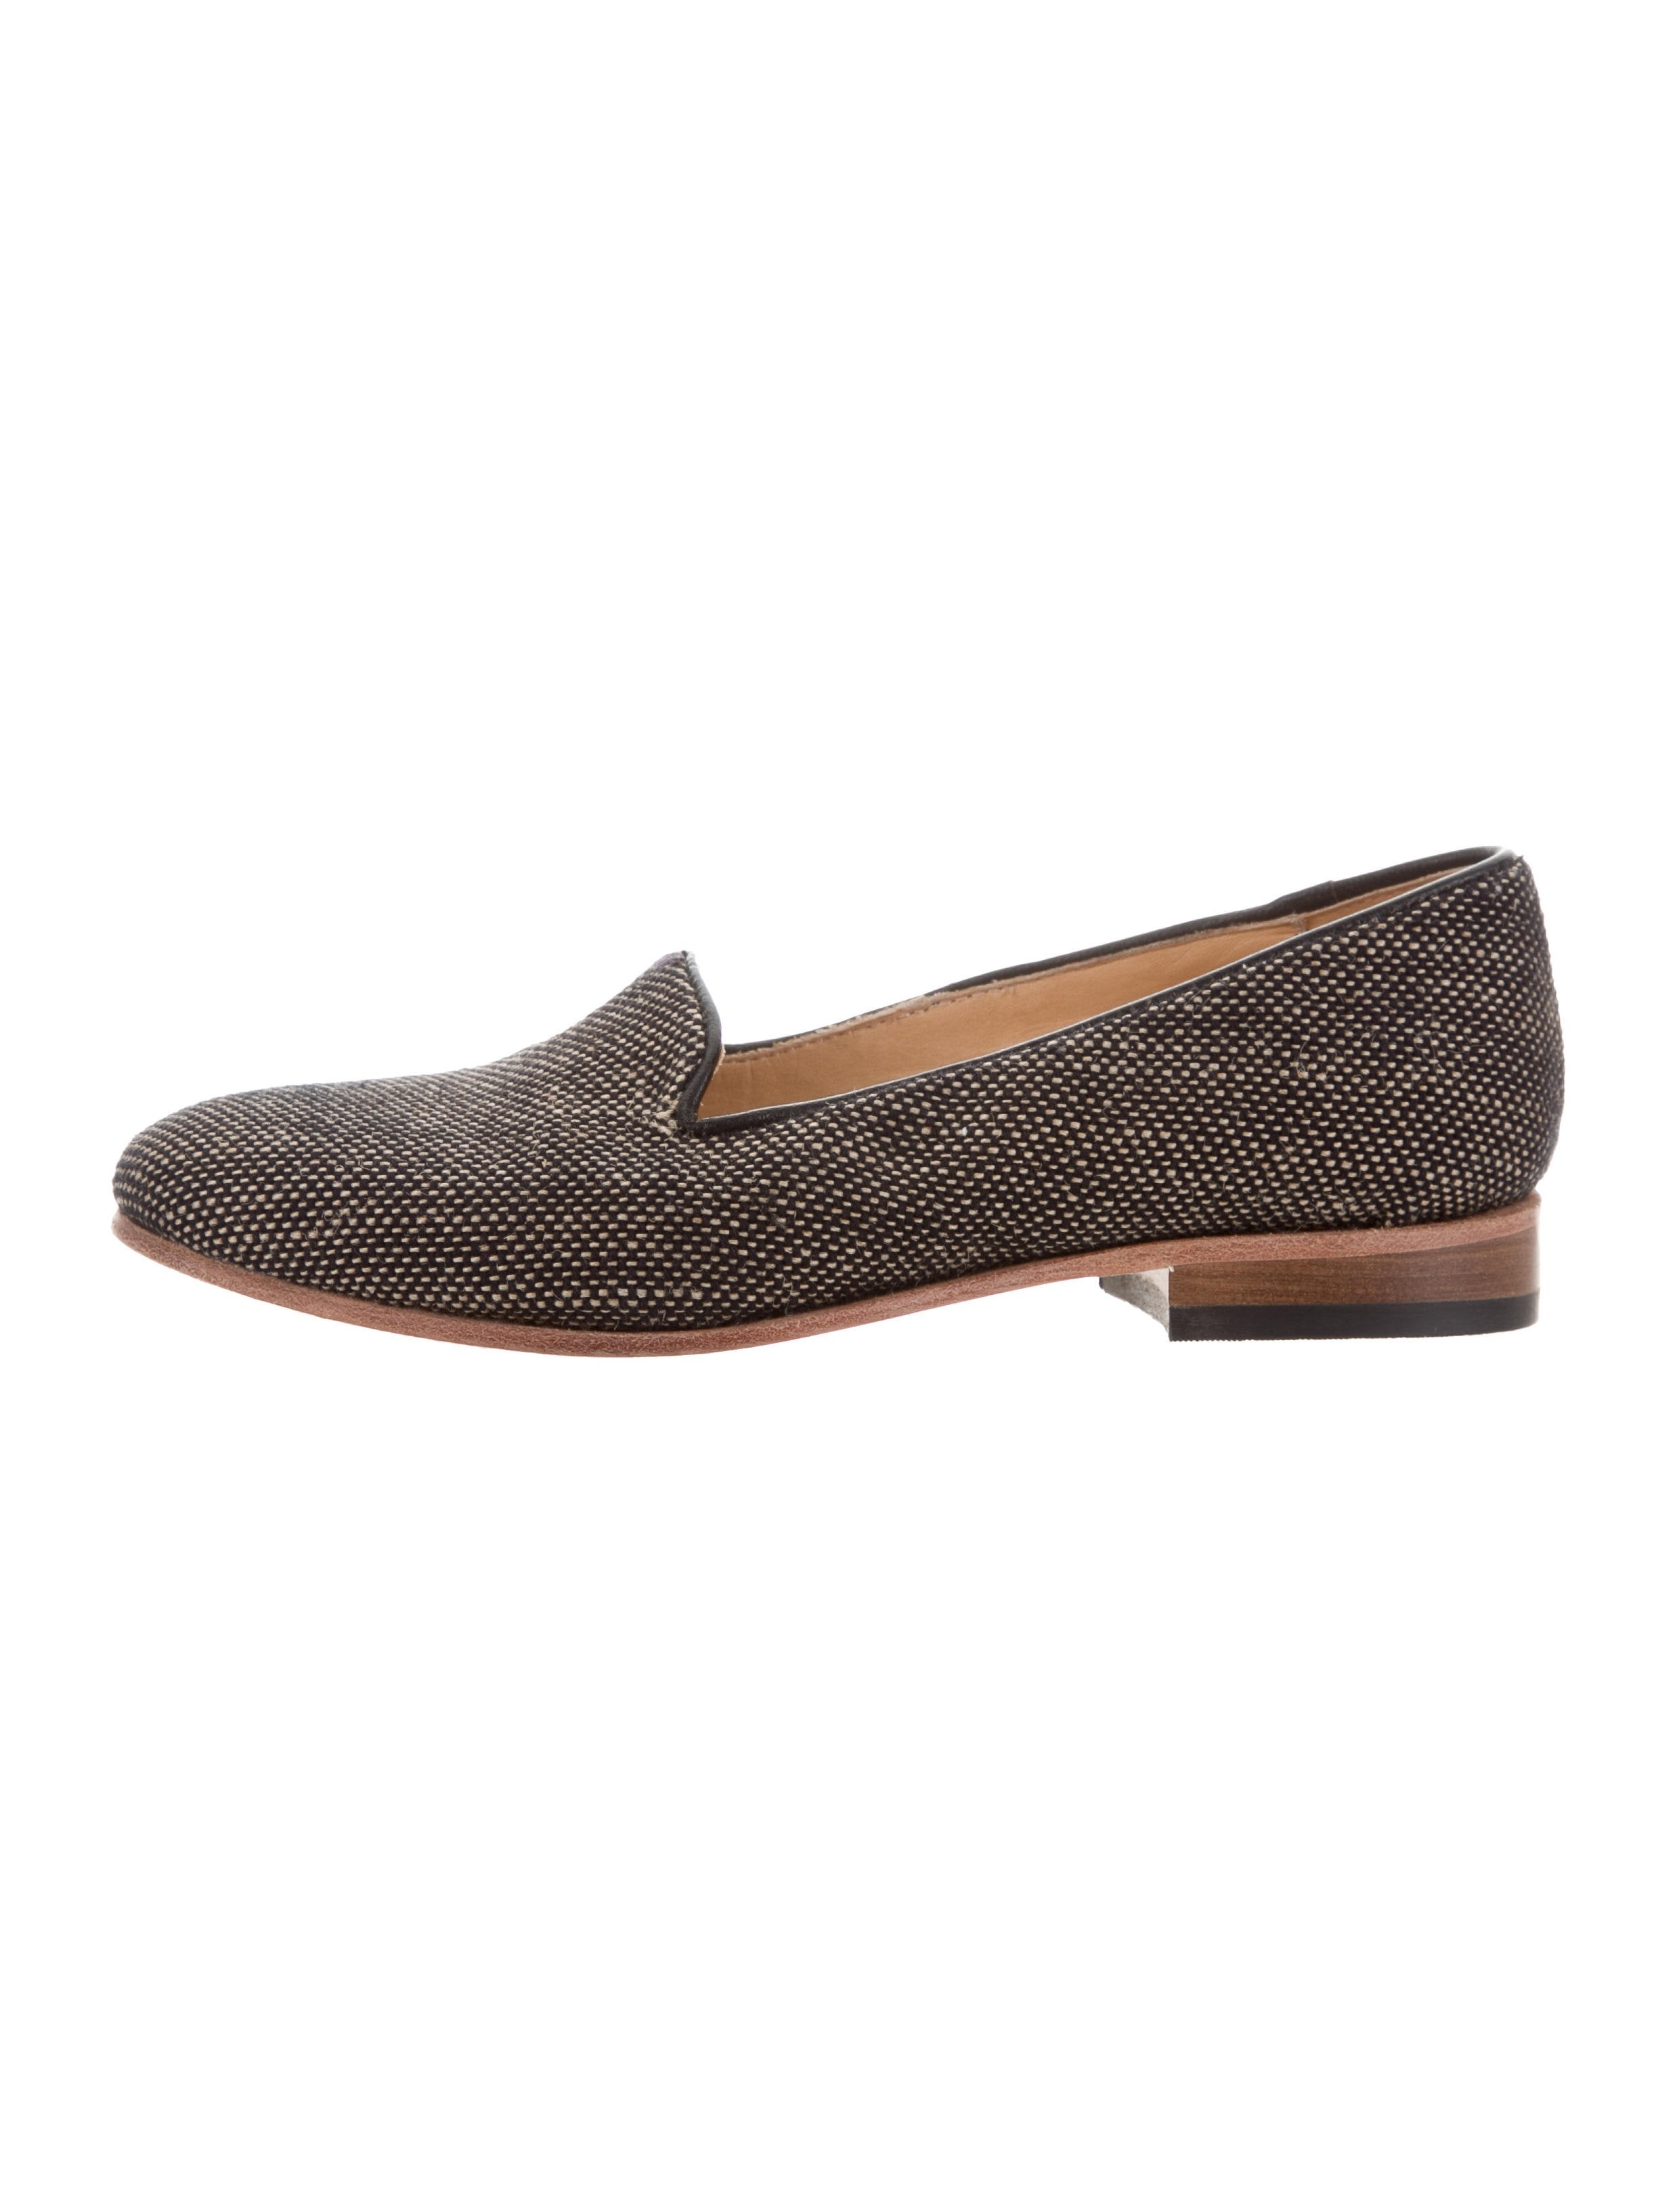 Dieppa Restrepo Canvas Round-Toe Loafers shopping online cheap online 2014 unisex cheap price free shipping buy factory outlet cheap online free shipping recommend NoMDgMH